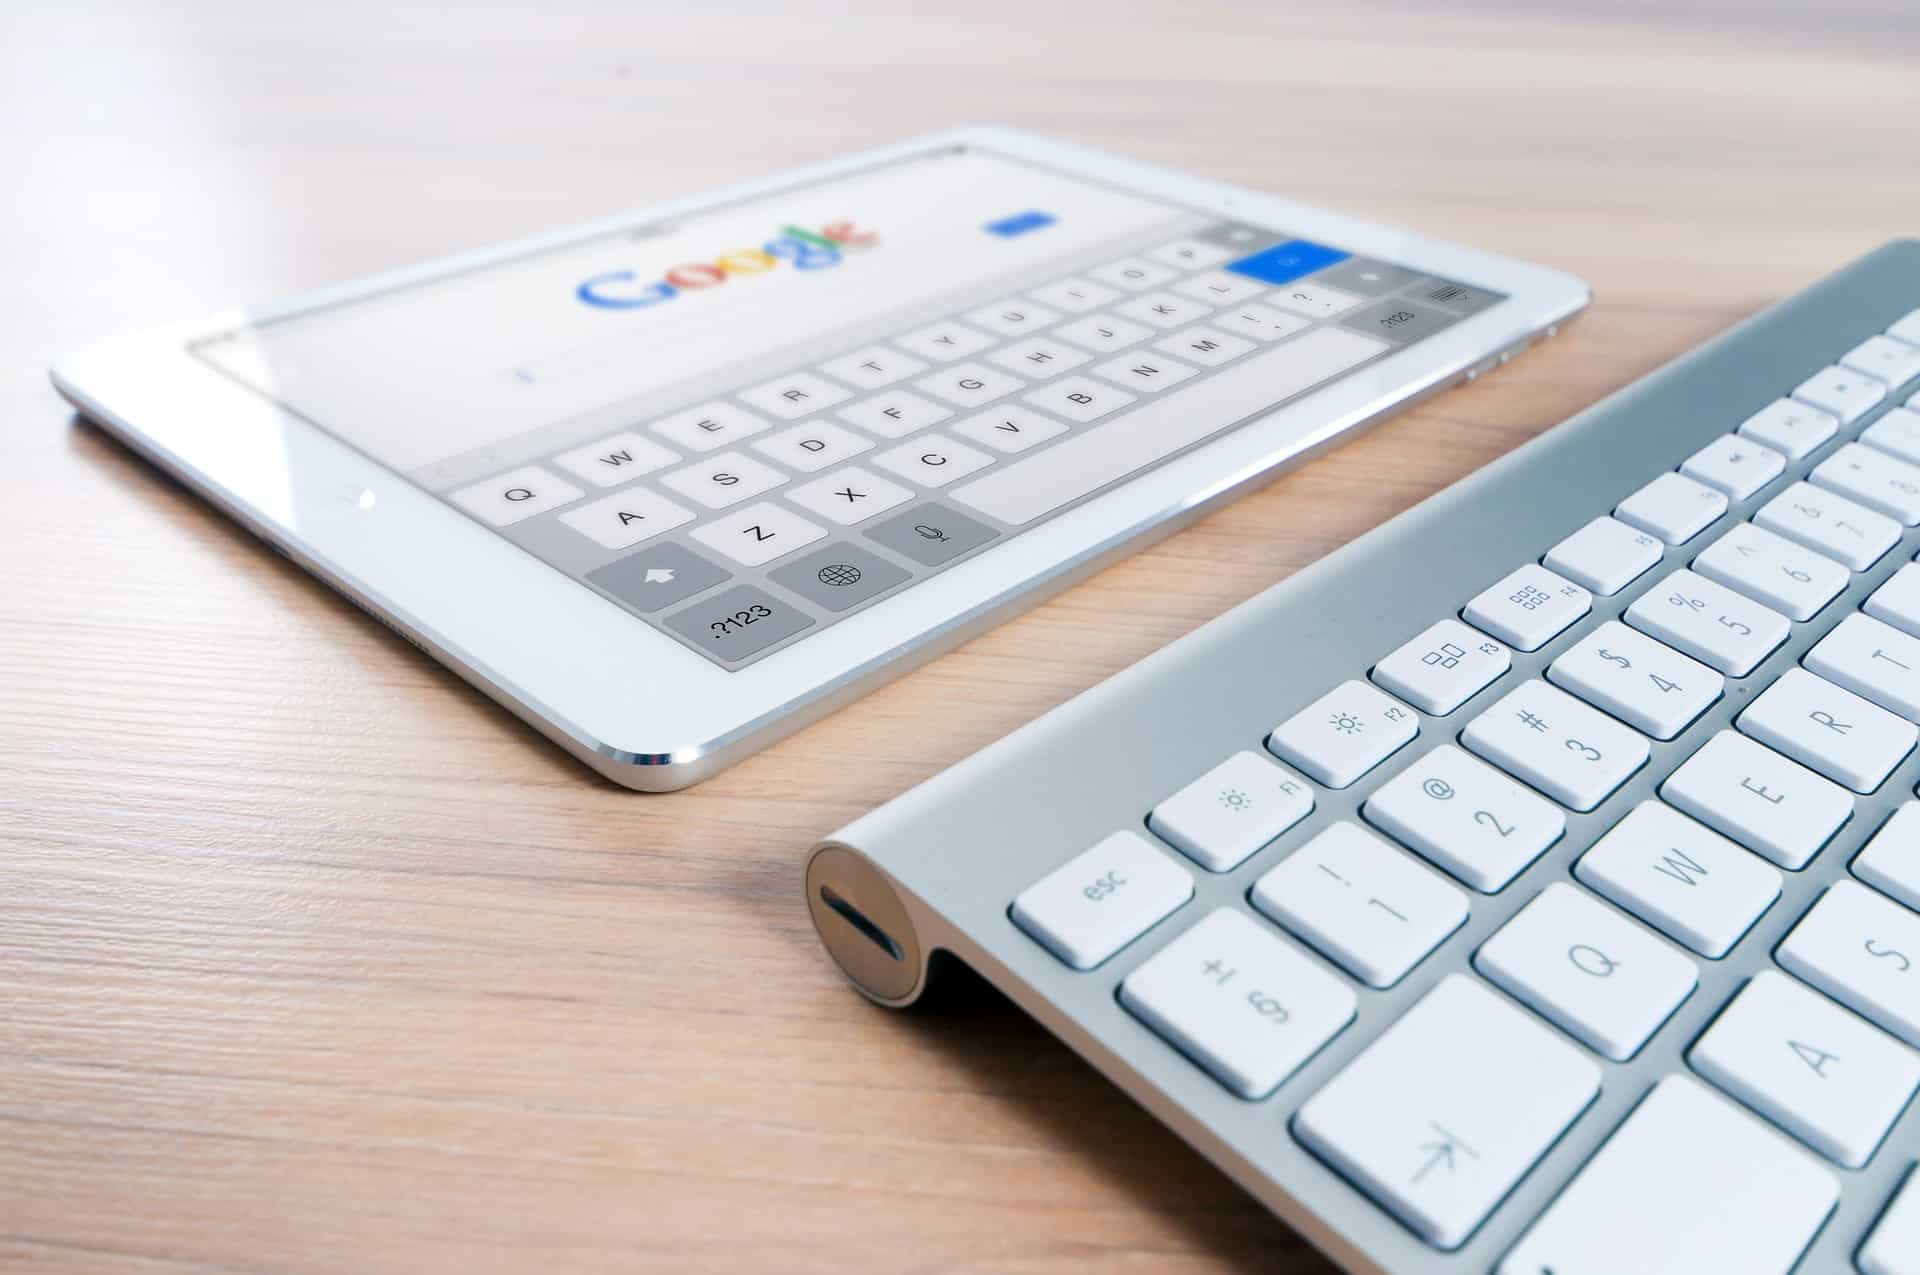 Key board and tablet with google search engine open - seo trends 2019